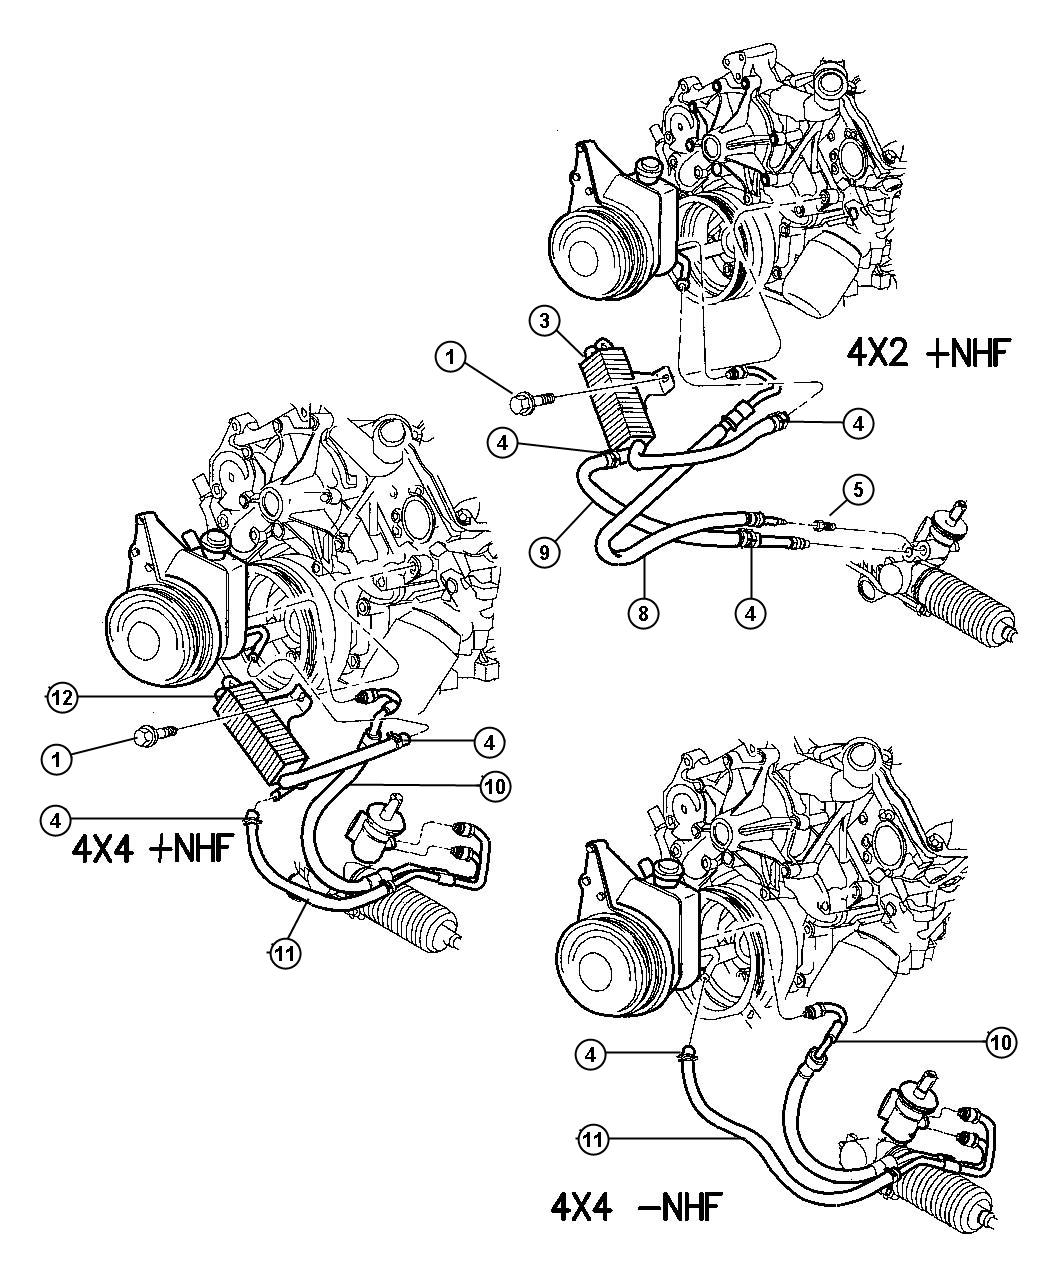 Dodge 2 7 Liter Engine Diagram on dodge intrepid water pump replacement